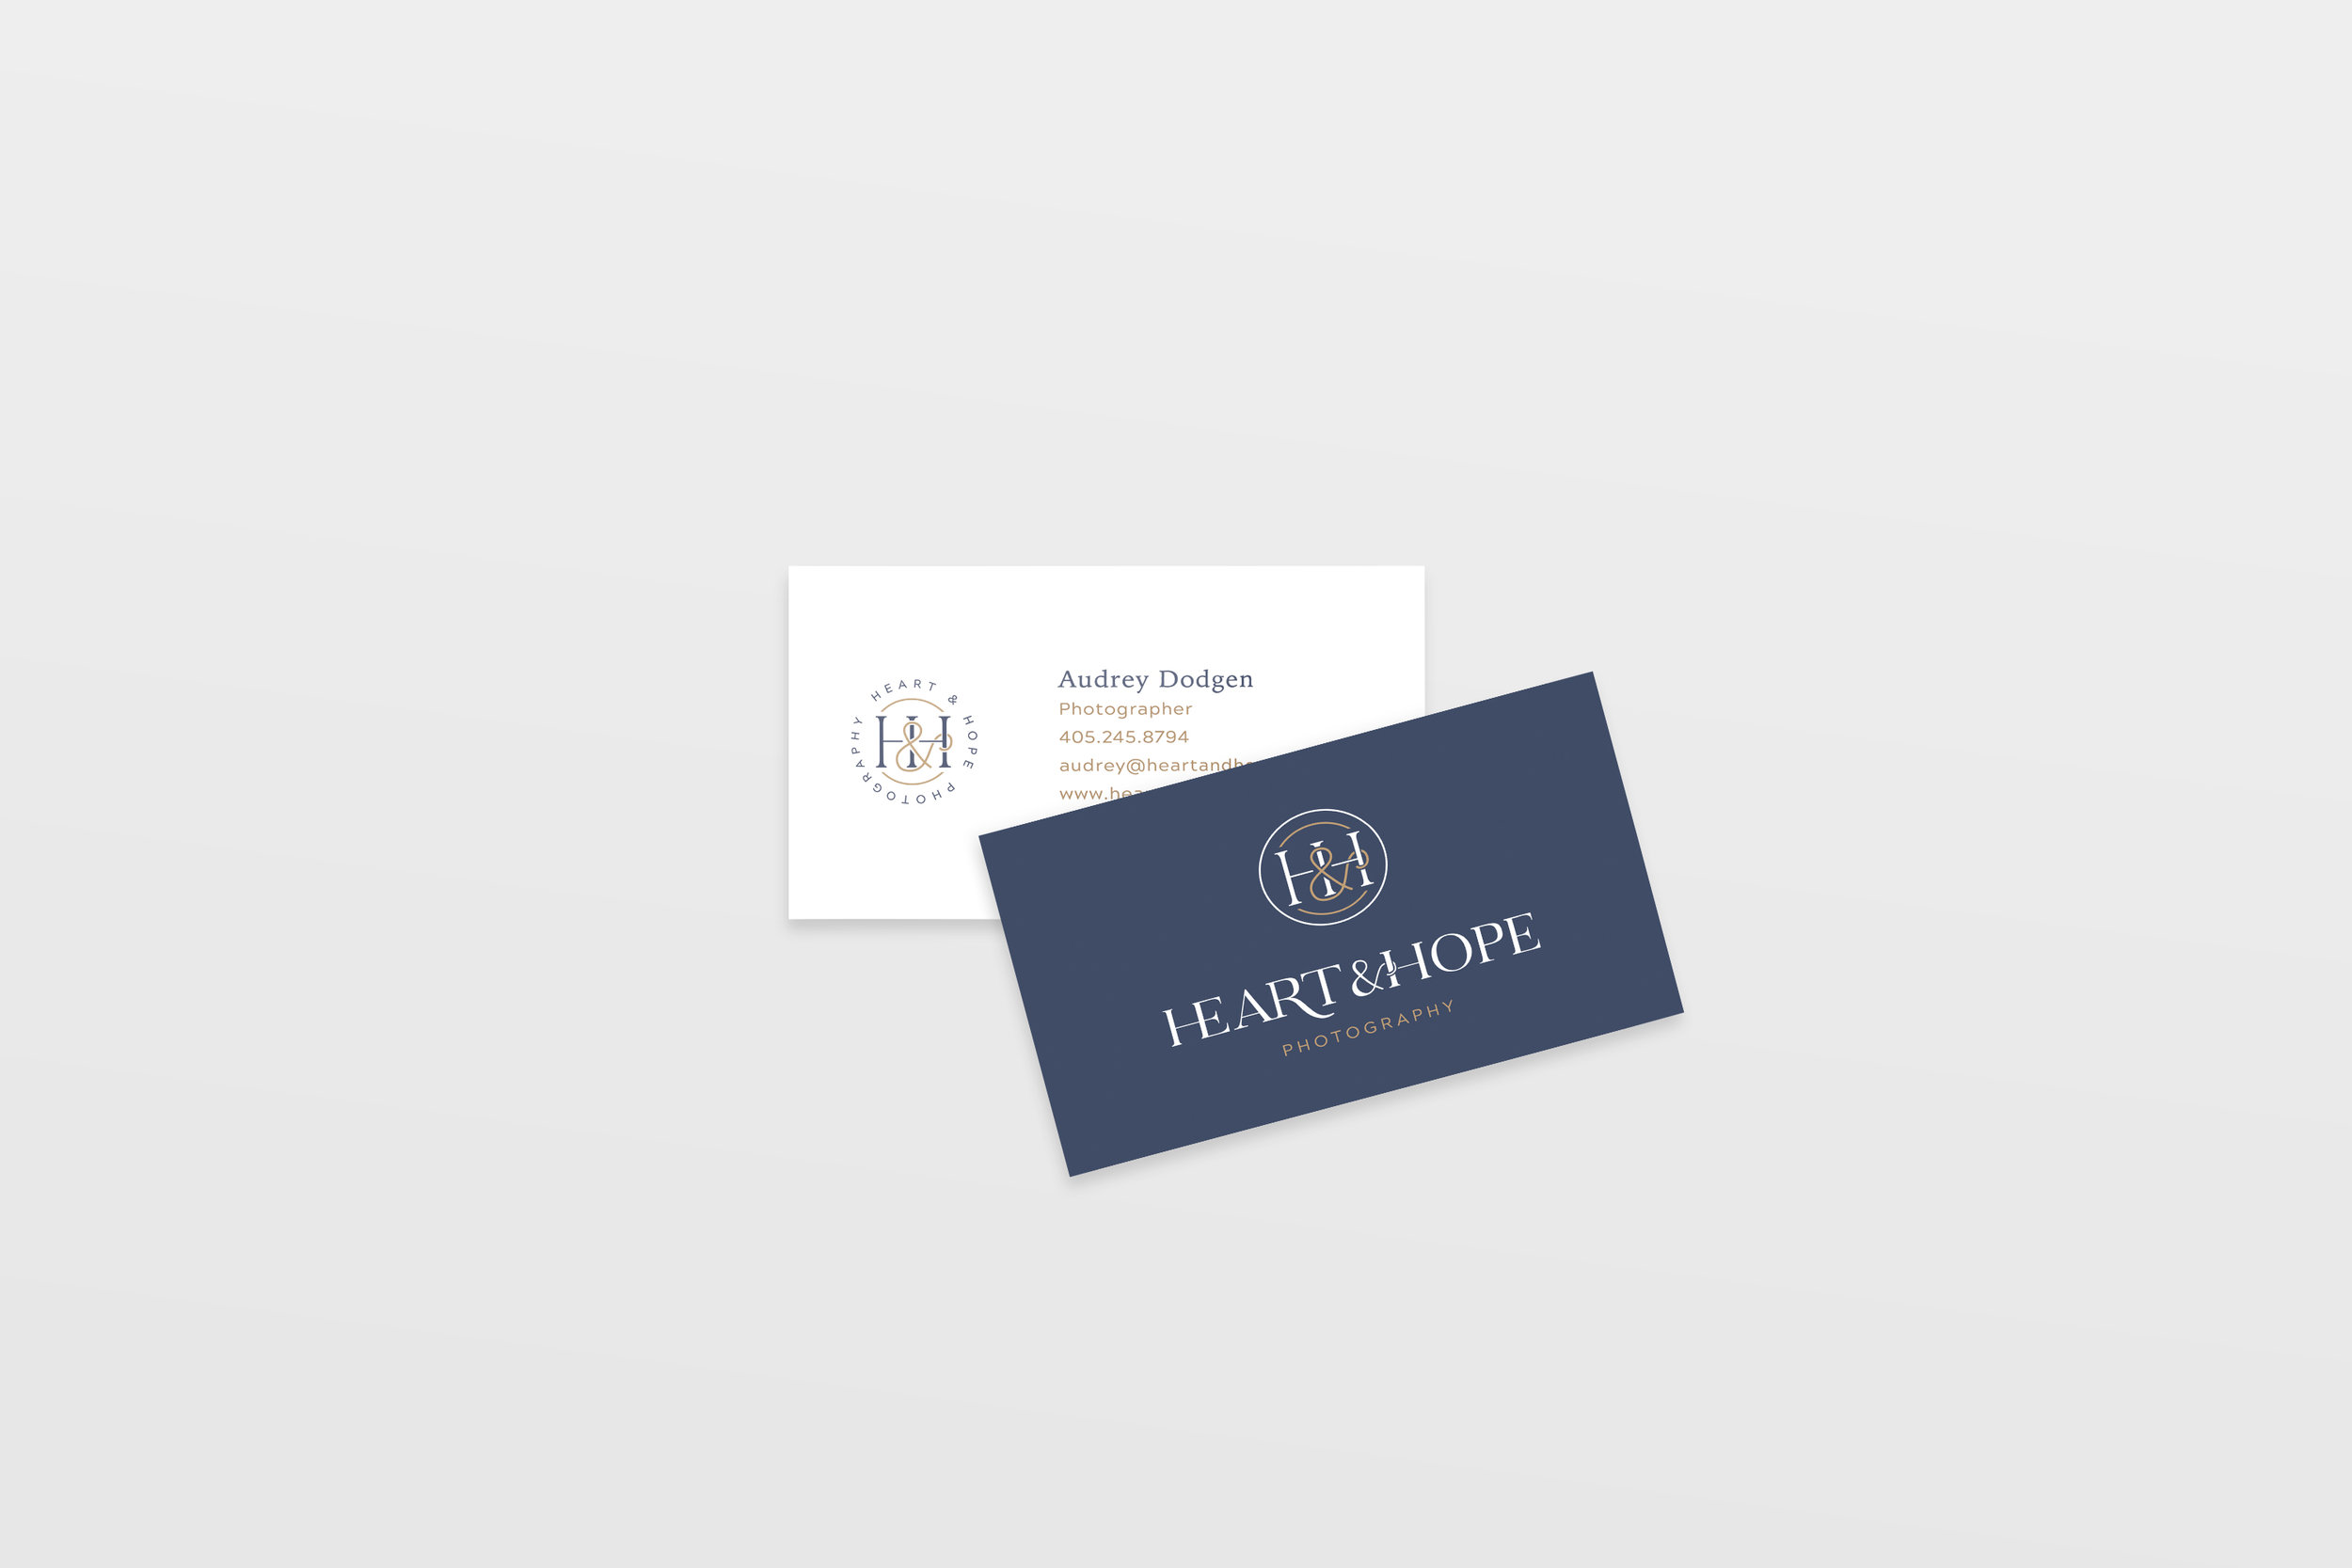 Heart and Hope Photography - photography business card design - tulsa brand designer - Hayley Bigham Designs